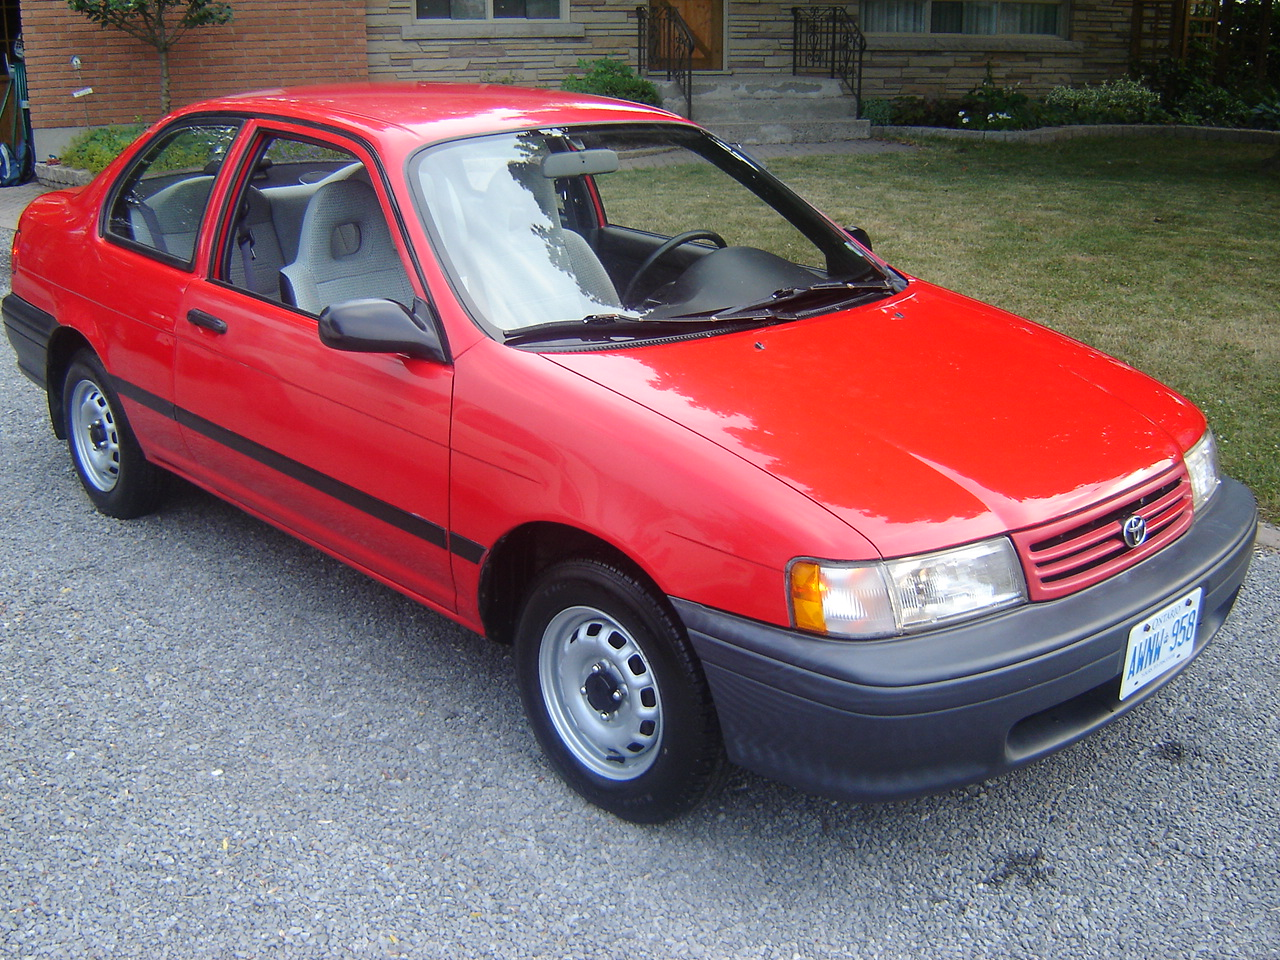 1993 toyota tercel with 6500 1992 Toyota Tercel 3 on 2000 Toyota 4Runner Pictures C4004 pi36353332 moreover 1985 Toyota Camry Reviews C4150 besides Toyota Tercel 1992 also Toyota Estima Electrical Wiring Diagram Manual Pdf Download 1990 2013 besides 1973 Toyota Celica Overview C4194.